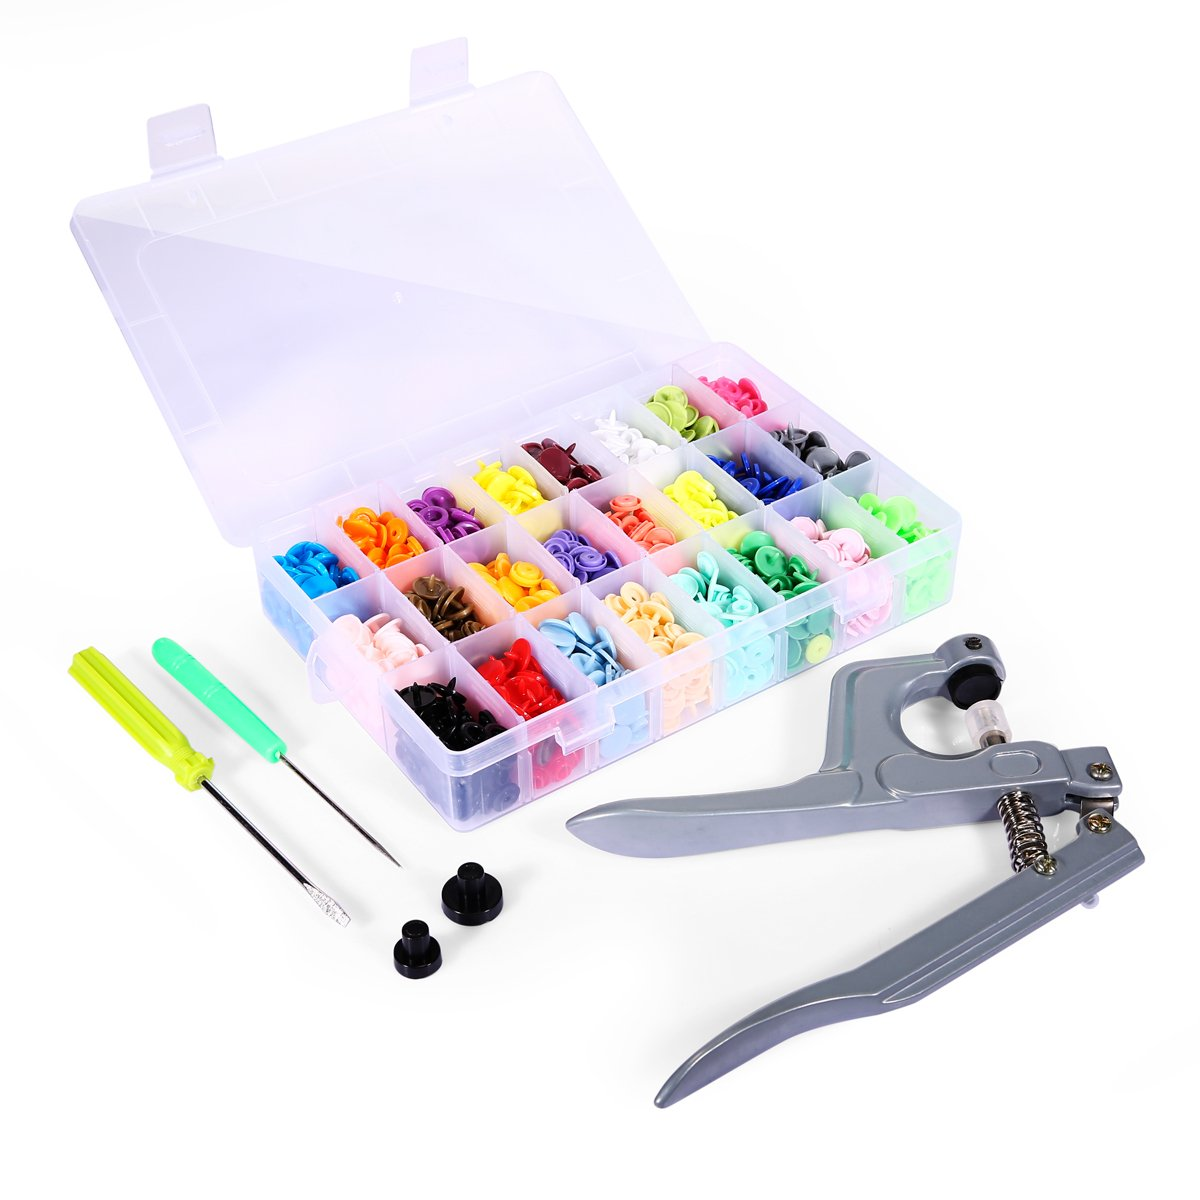 Leopardprintfans 360pcs T5 Snaps Plastic Buttons Size 20 with Snaps Pliers Set for Clothing Sewing and Crafting 4337005993